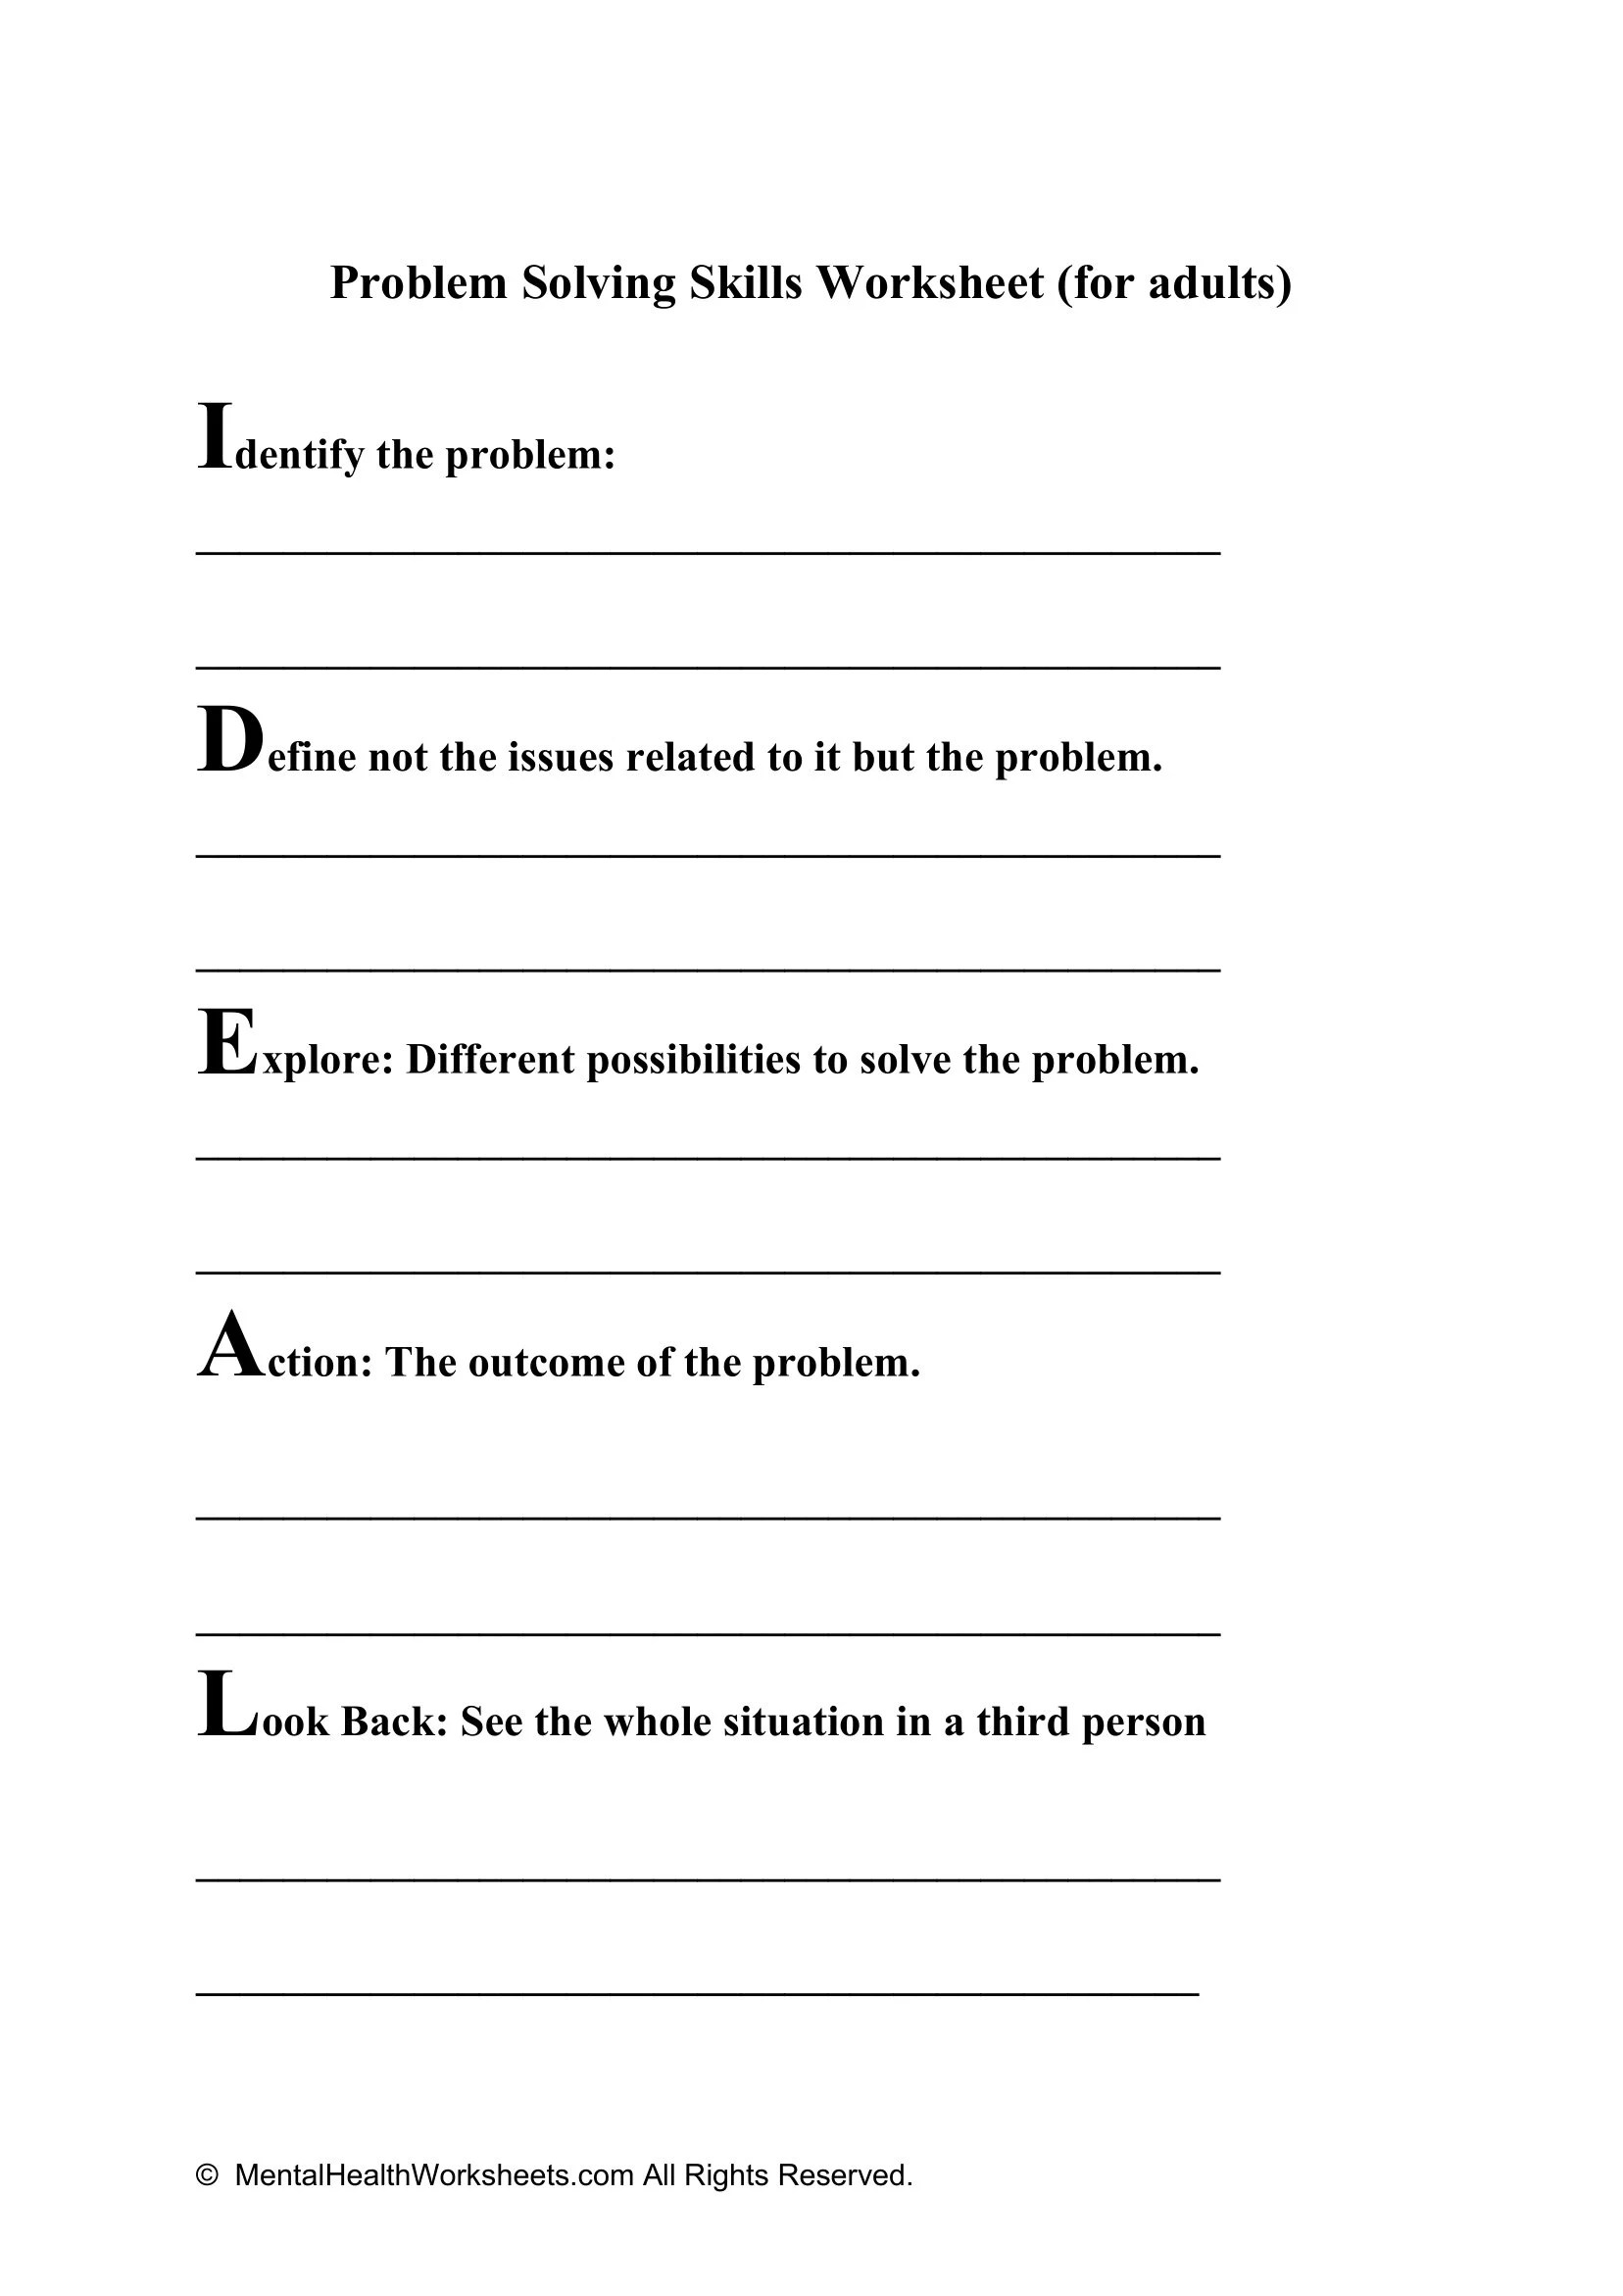 Problem Solving Skills Worksheet For Adults